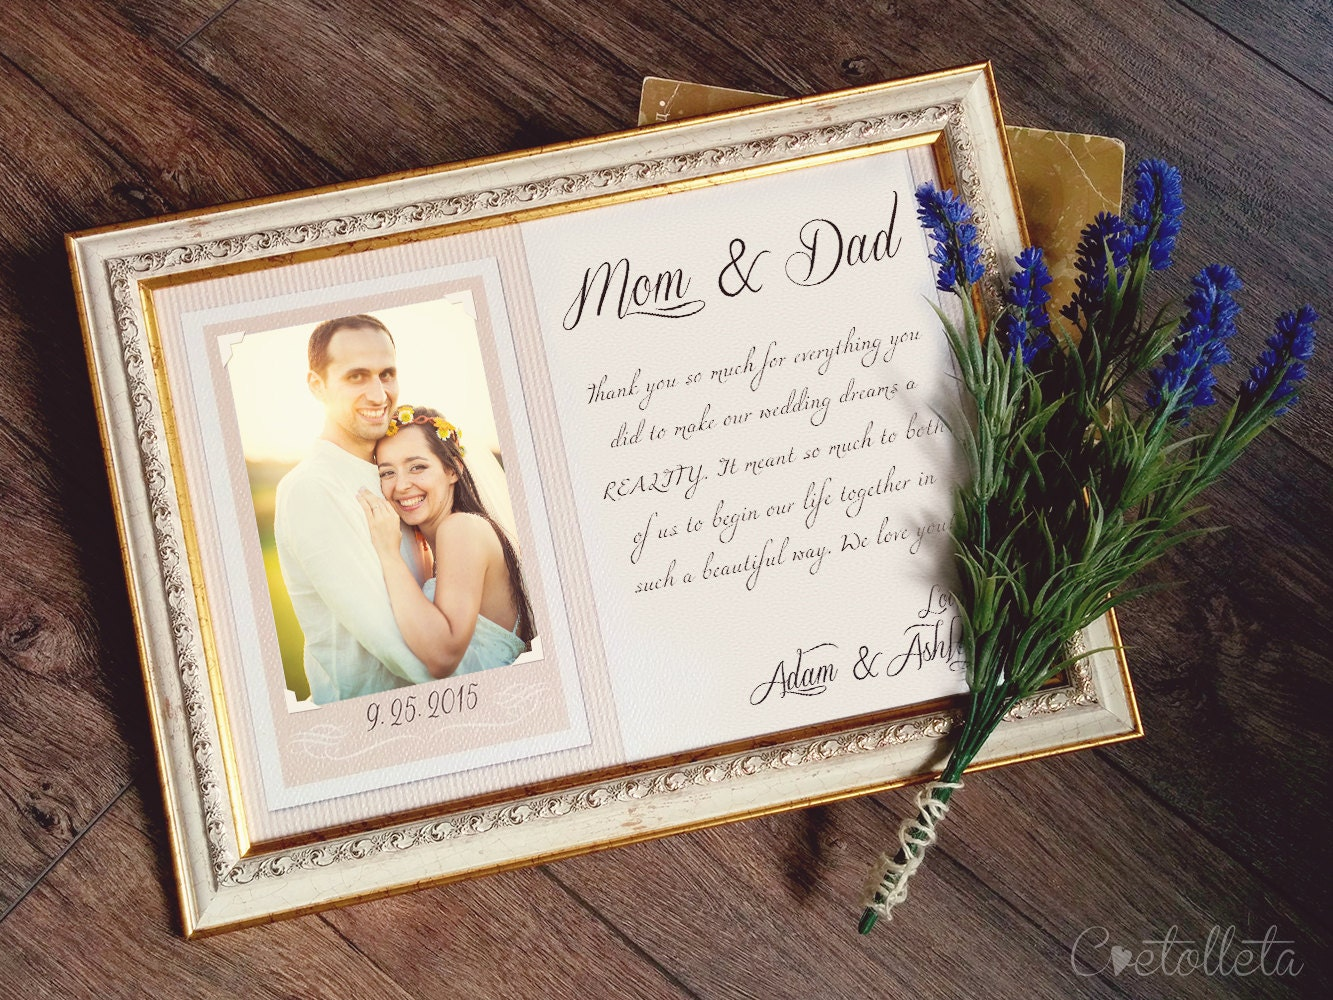 Gifts For Parents Wedding Thank You: Parents Wedding Gift-Parents Thank You Gift Wedding Gift For